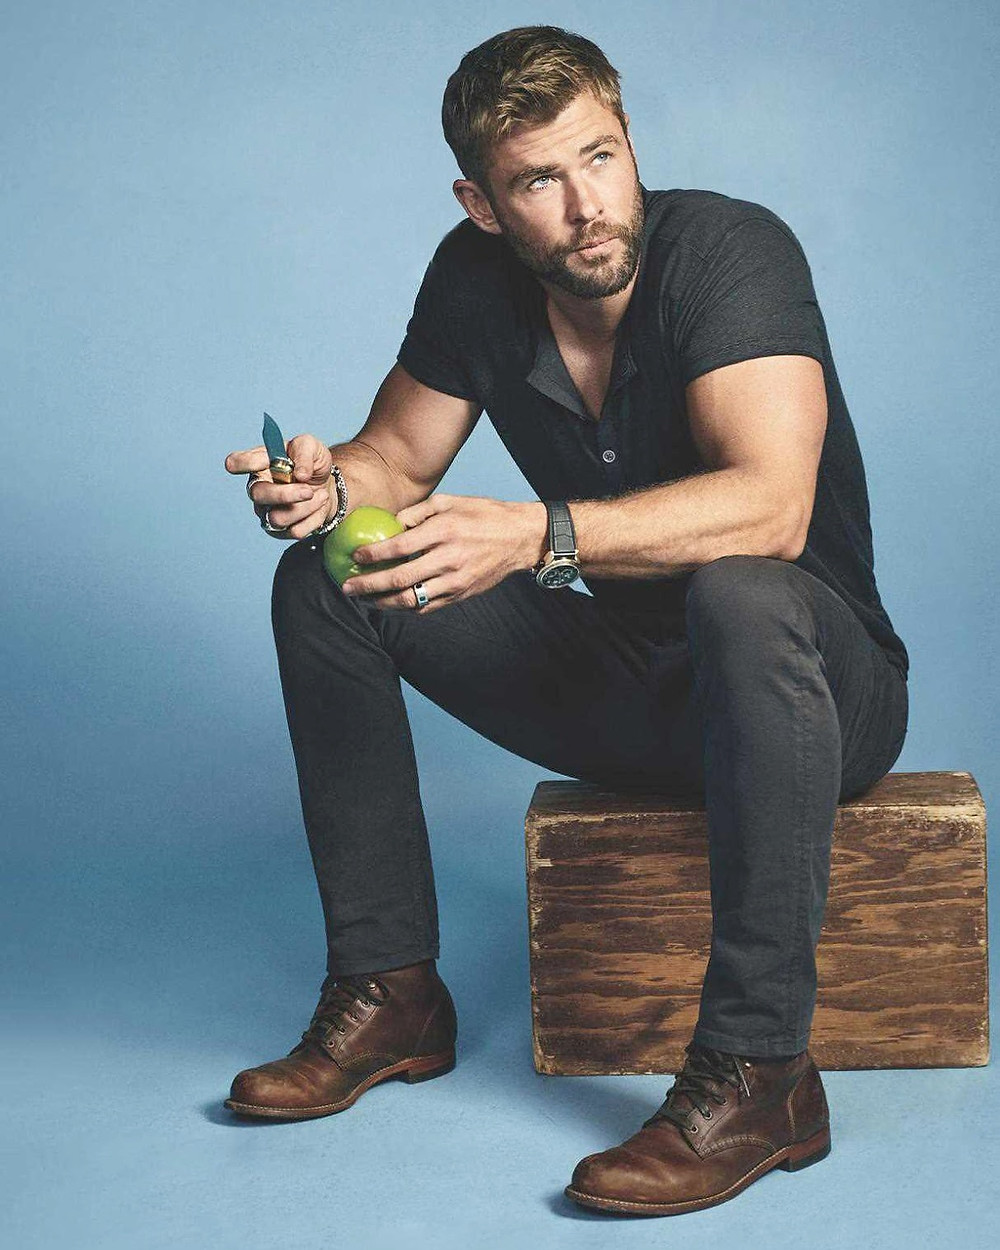 Chris Hemsworth for Men's Journal, November 2017. Wearing a John Varvatos top, Paige denim, and Wolverine boots. Styled by Samantha McMillen.